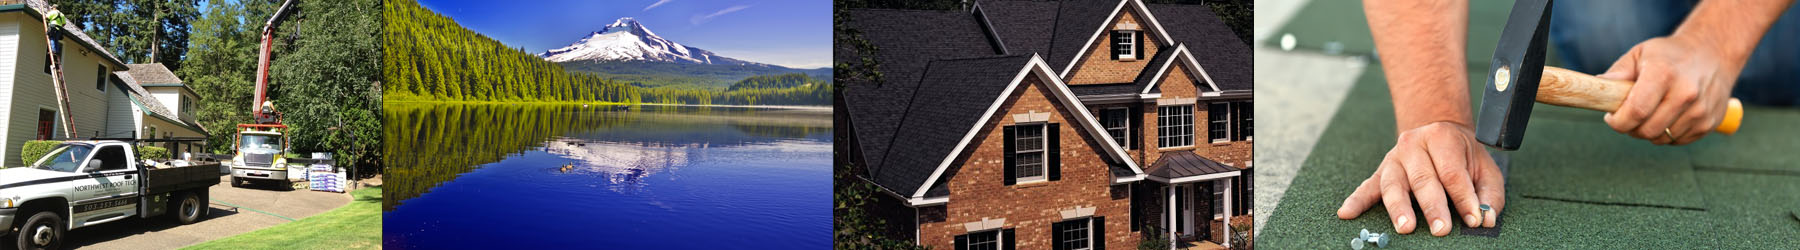 Commercial Roofing Contractor Northwest Roof Tech Inc